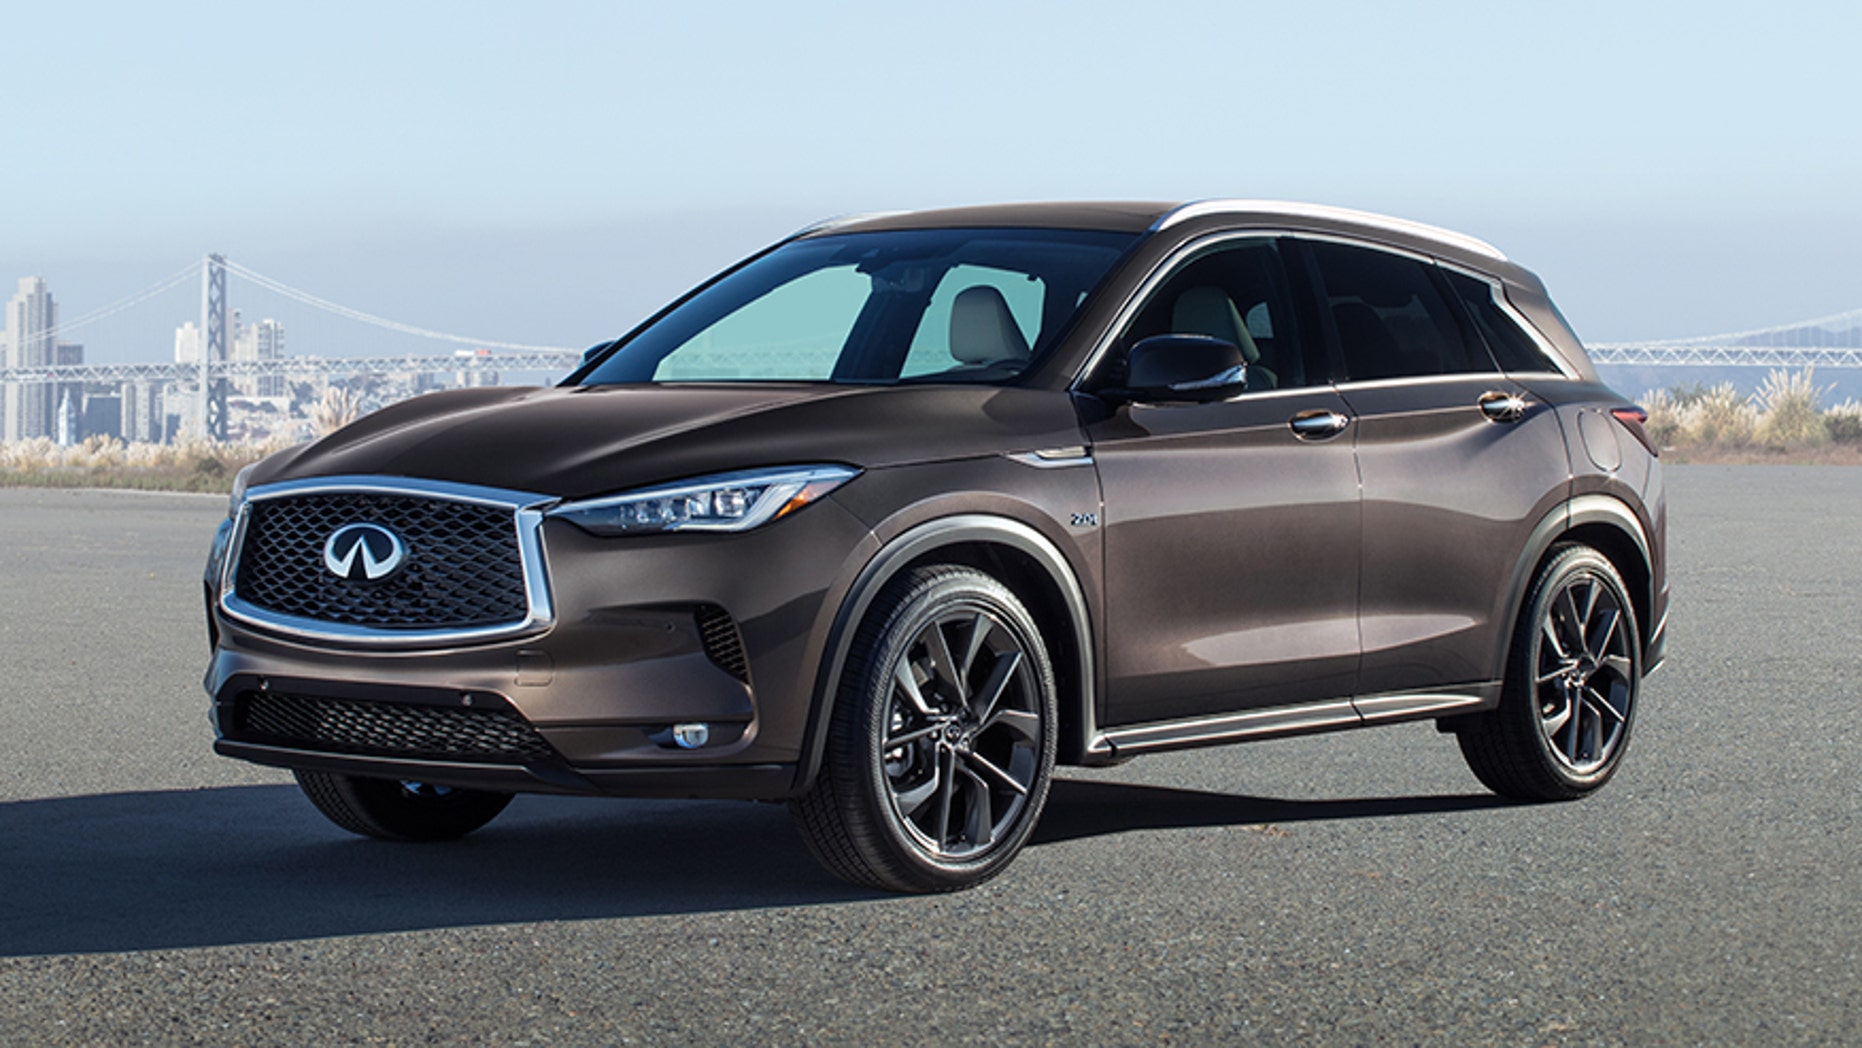 The all-new INFINITI QX50 is a premium mid-size SUV with world-first technologies, stand-out design and class-leading interior space – all on an entirely new platform. The QX50 also features a VC-Turbo engine, the world's first production-ready variable compression ratio engine, which delivers driving pleasure and efficiency in equal measure, transforming on demand.